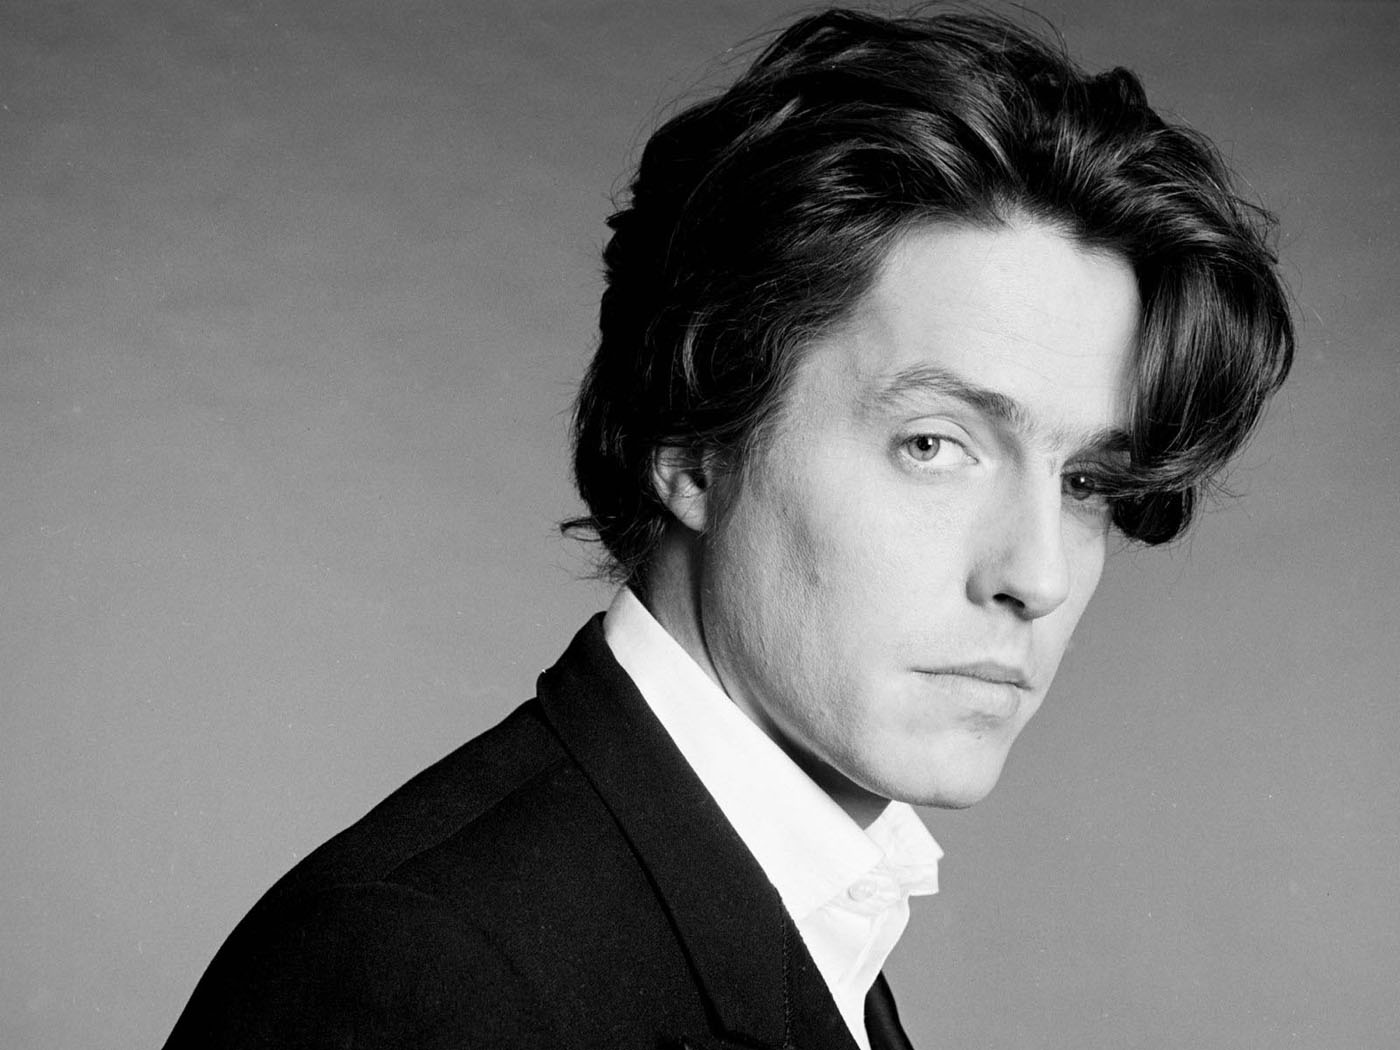 007_hugh_grant_theredlist - 007_hugh_grant_theredlist